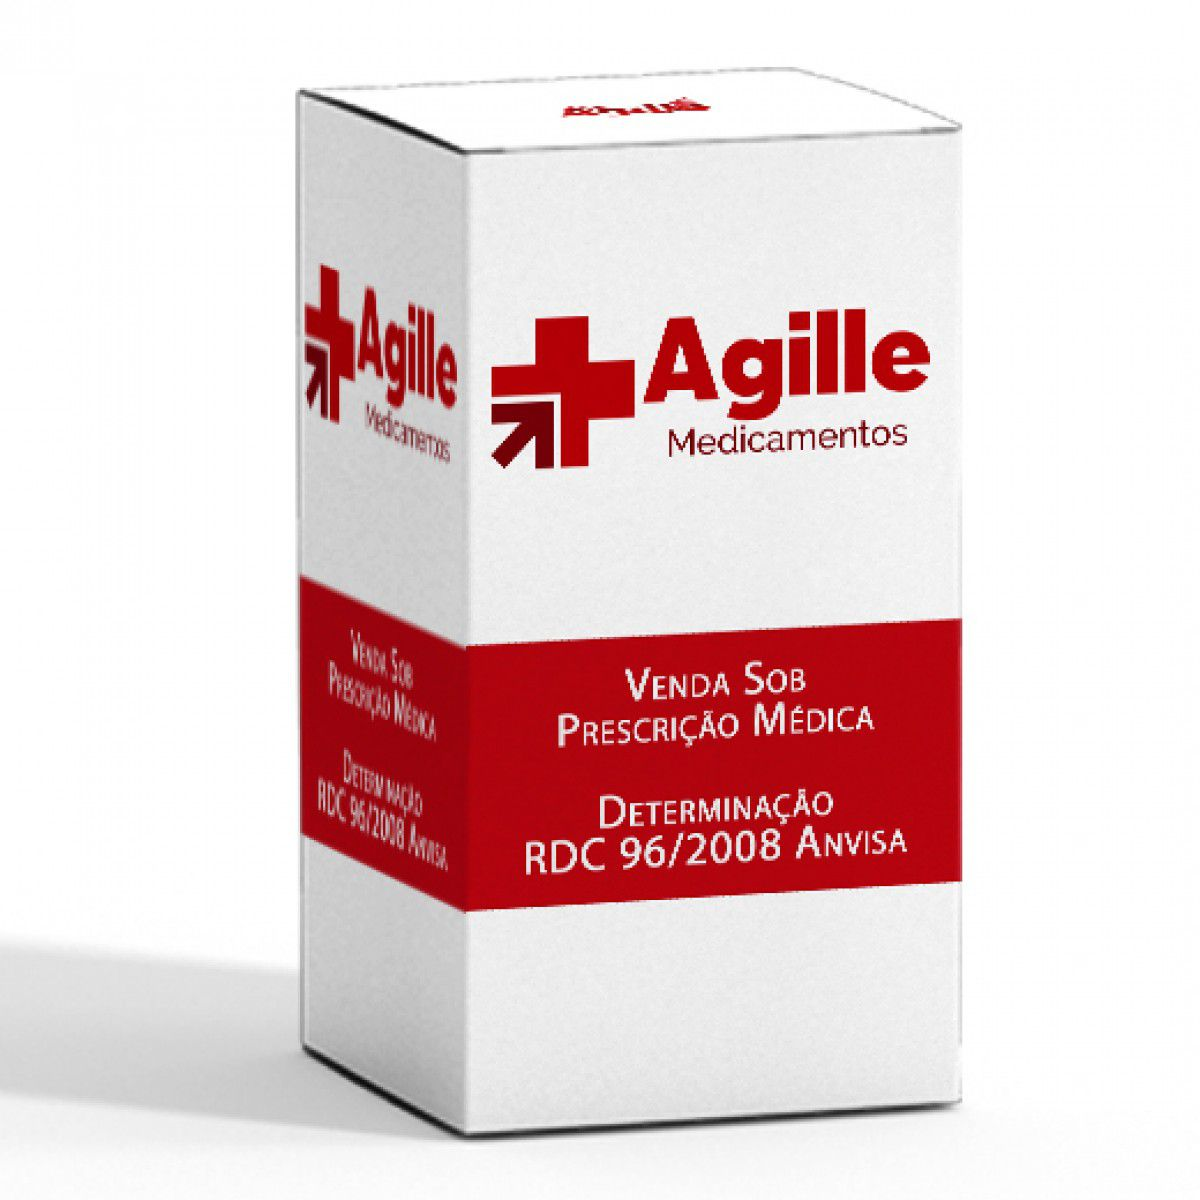 EXEMESTANO 25mg cx 30 drg  - Agille Speciality